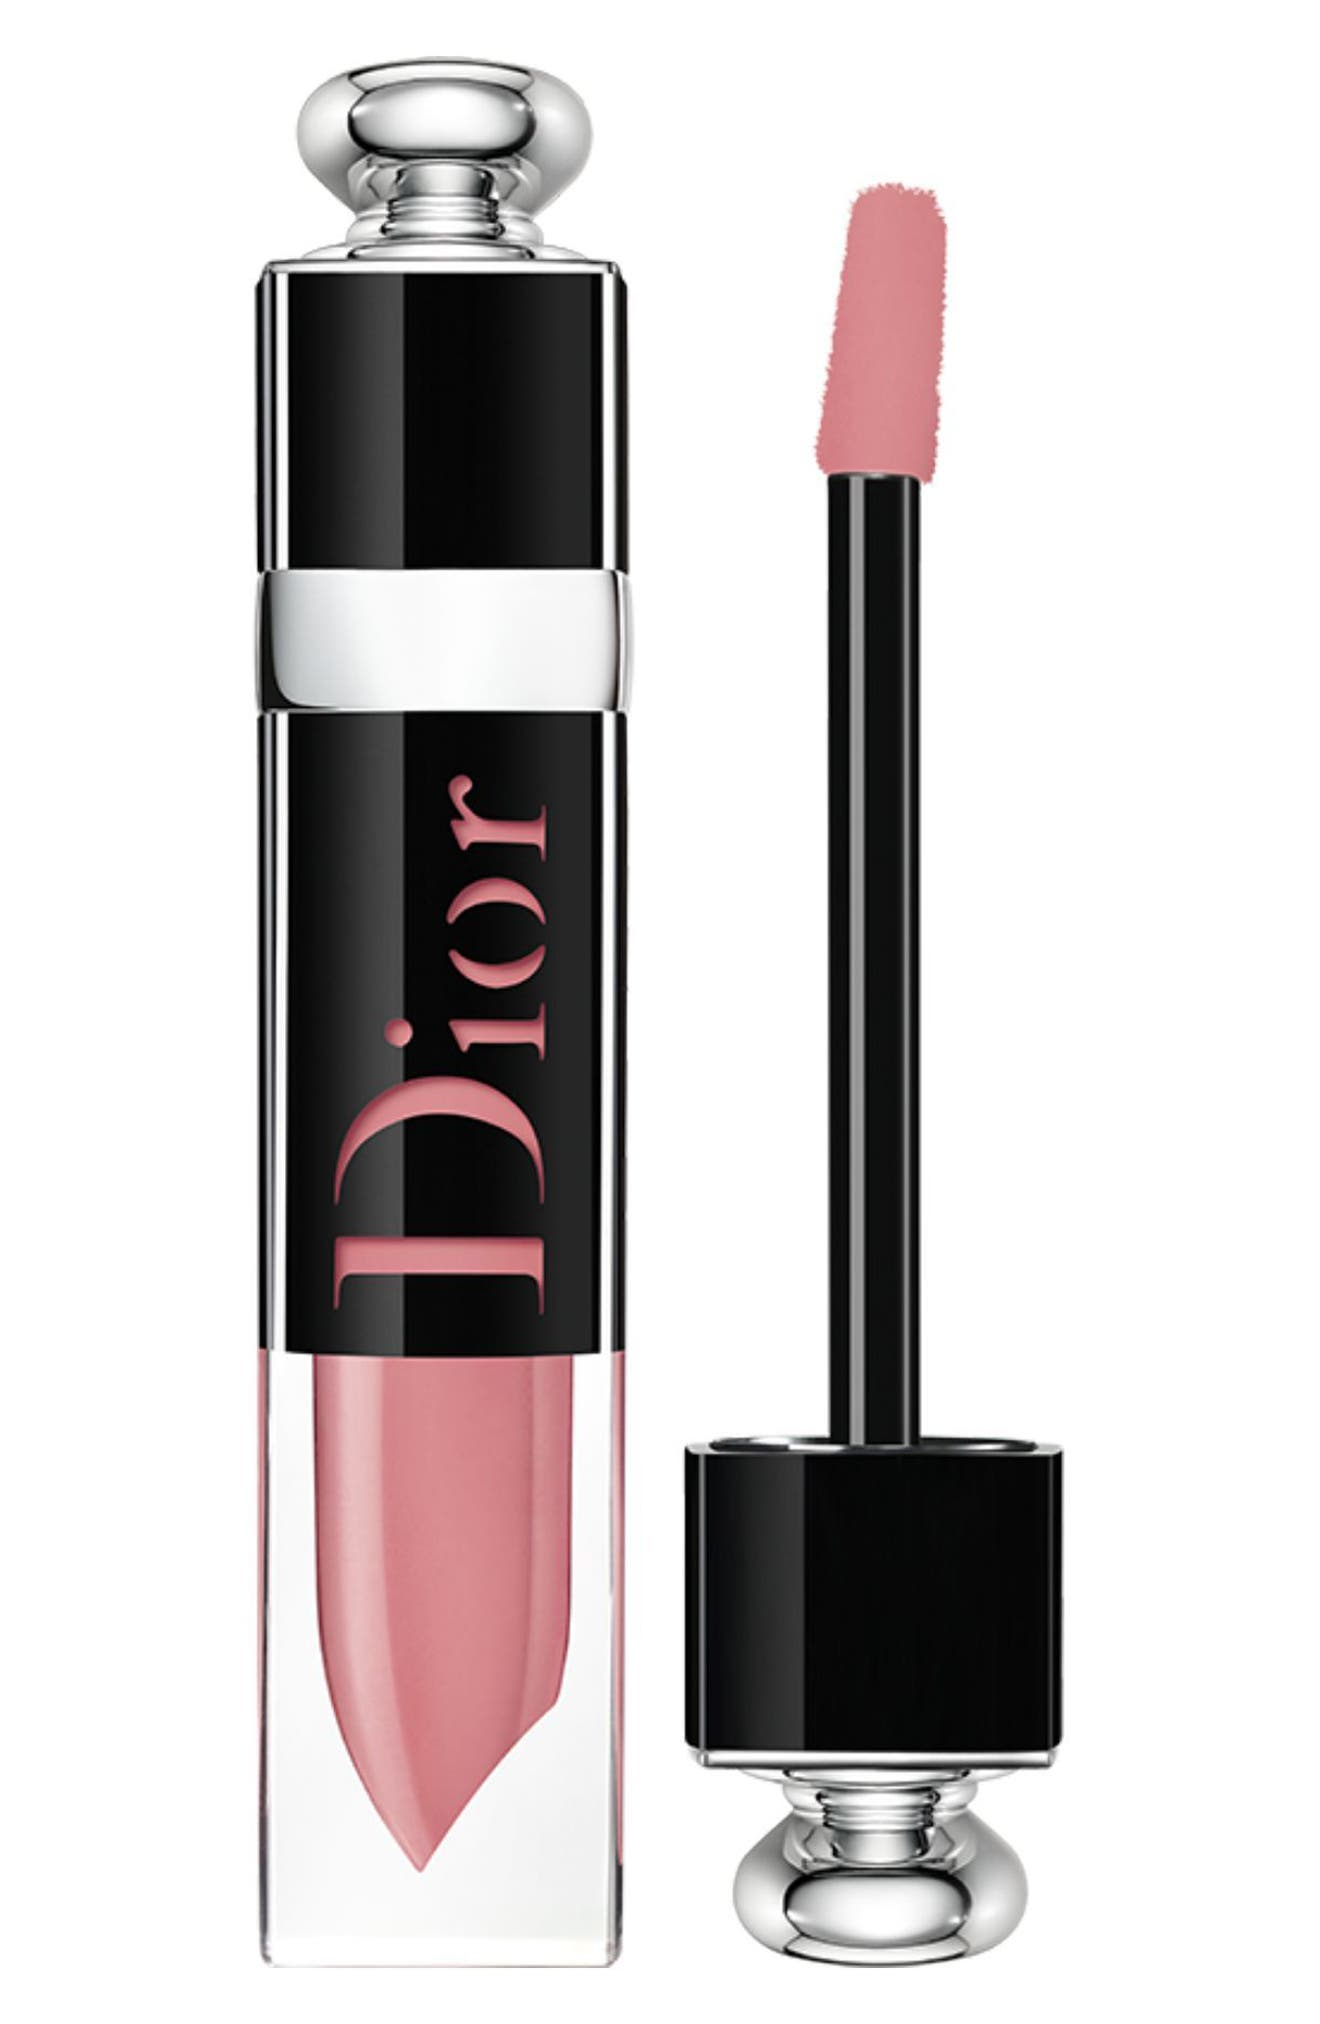 Dior Addict Lip Plumping Lacquer Ink - 426 Lovely-D /rosy Nude